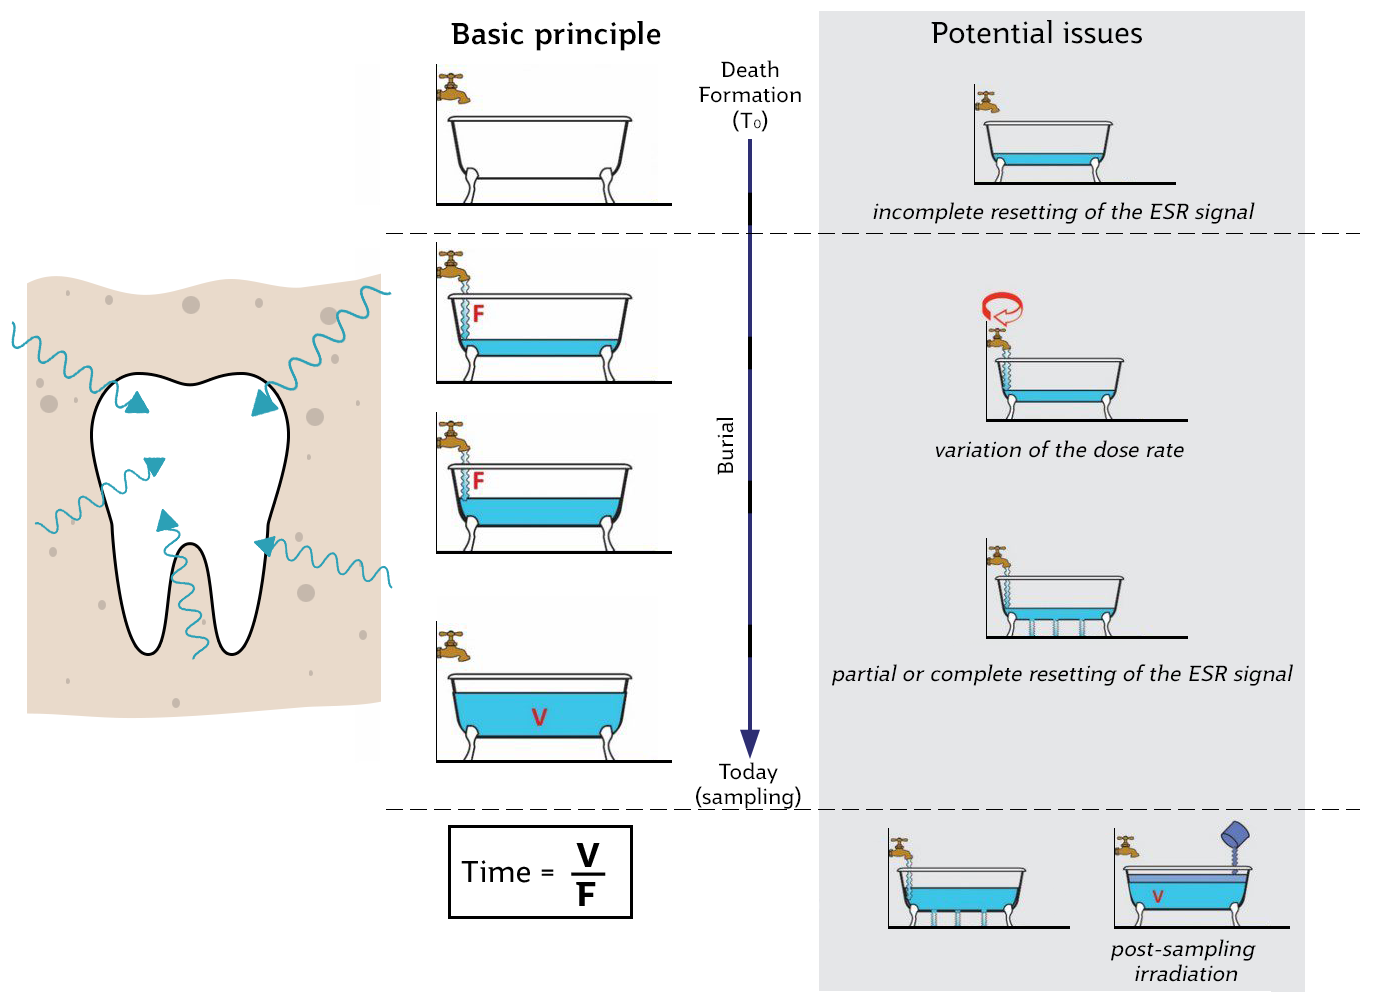 A series of bathtubs representing the radiation in a tooth. The increasing volume represents the total dose, while the flow of the tap represents the rate. Over time, the radiation in the tooth following its burial changes, and variations on its dose must be accounted for.